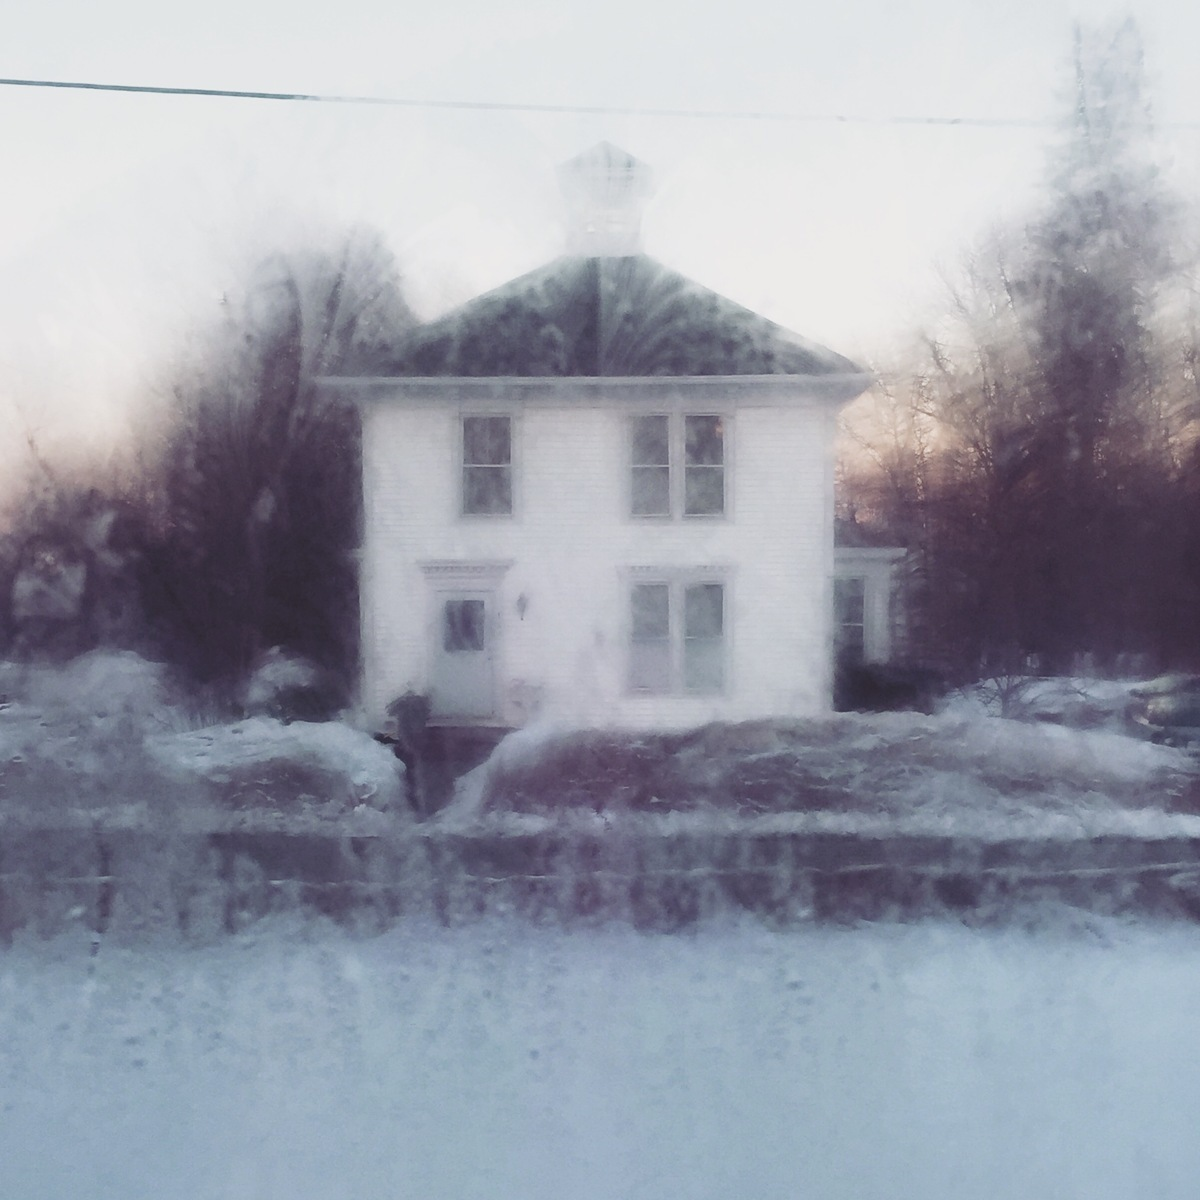 3.23 Wet dawn white house (large view)